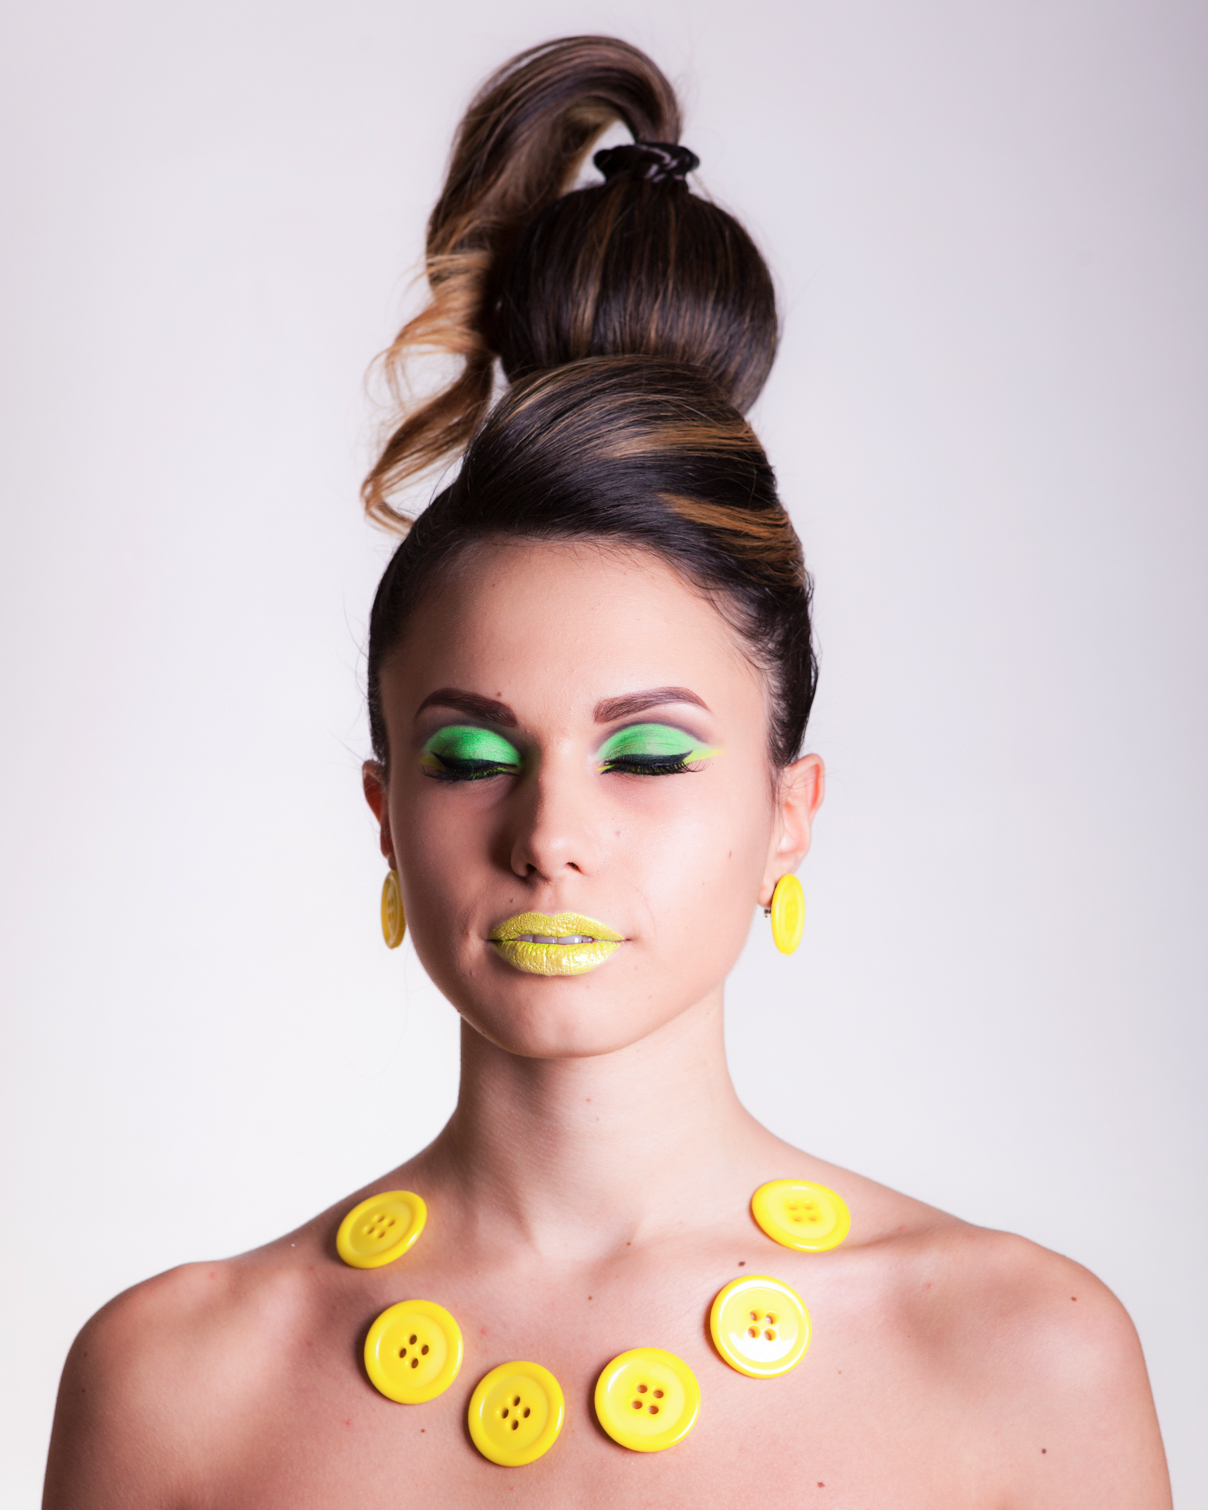 Blond girl, sixties makeup and hairstyle, yellow jewelry bottons